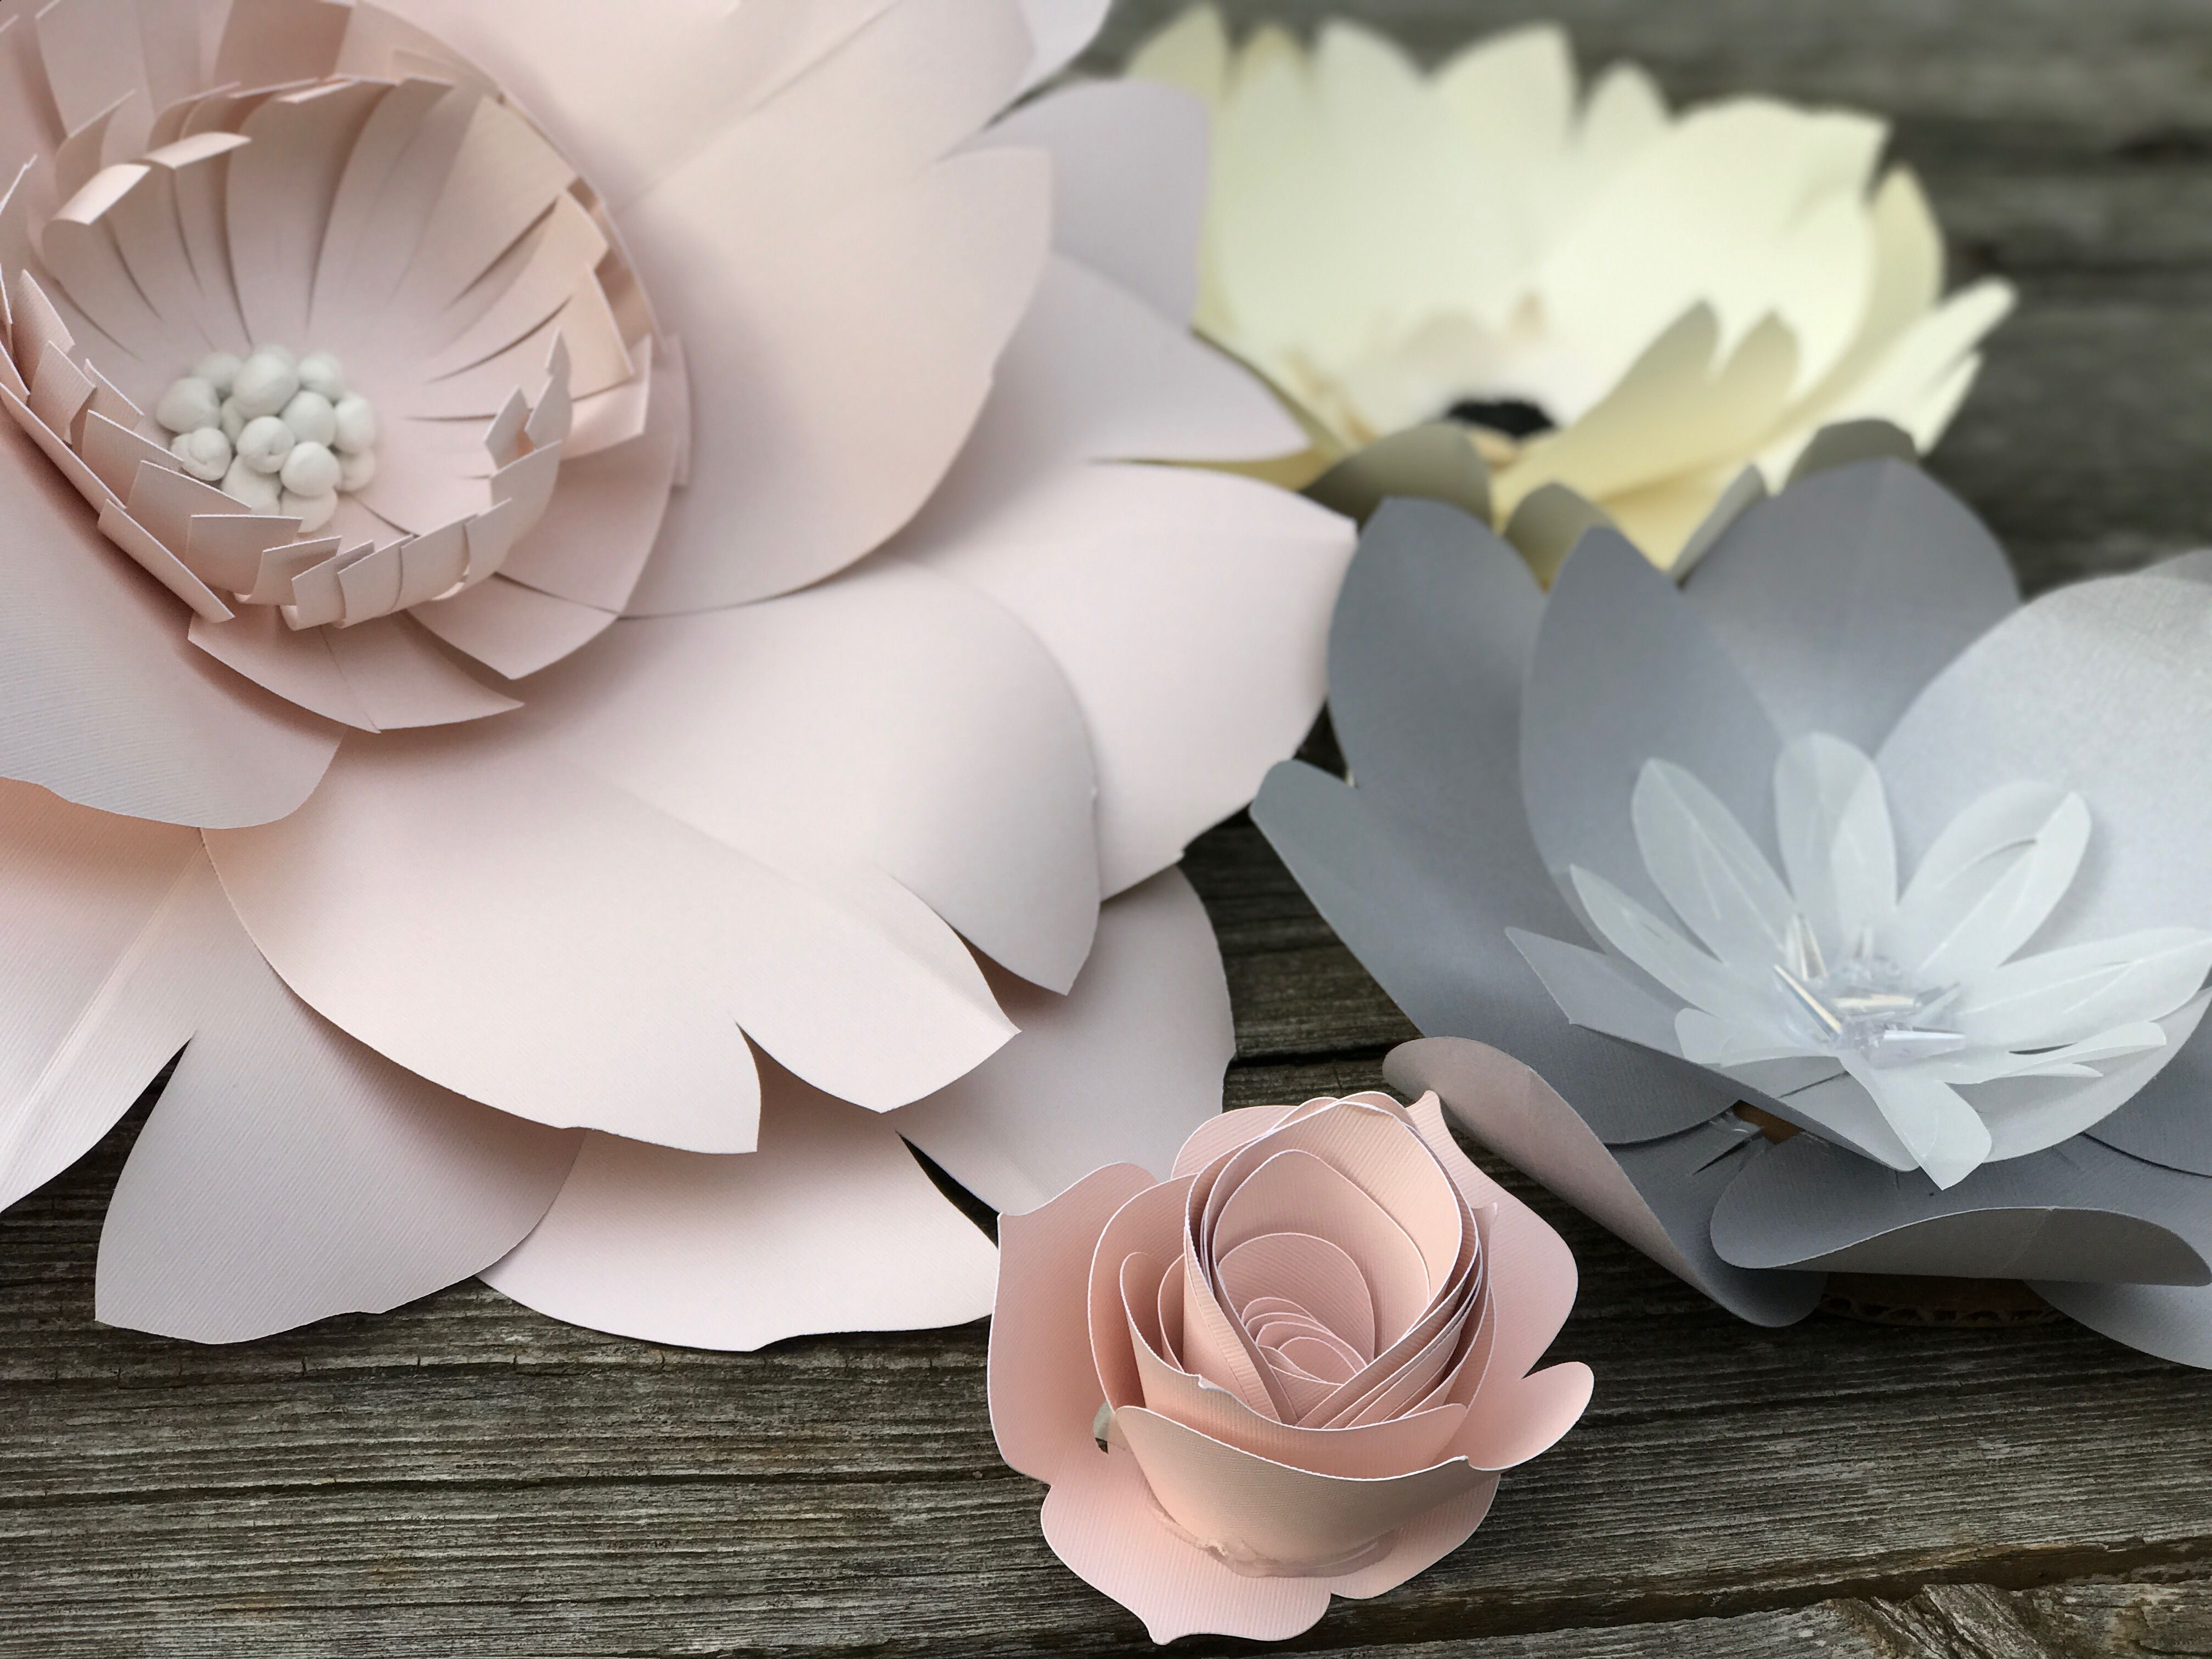 Got walls got a wedding or party soon lets make beautiful paper lets make beautiful paper flower wall backdrop customized to your color scheme and style you are envisioning for lets chat today mi prima belle mightylinksfo